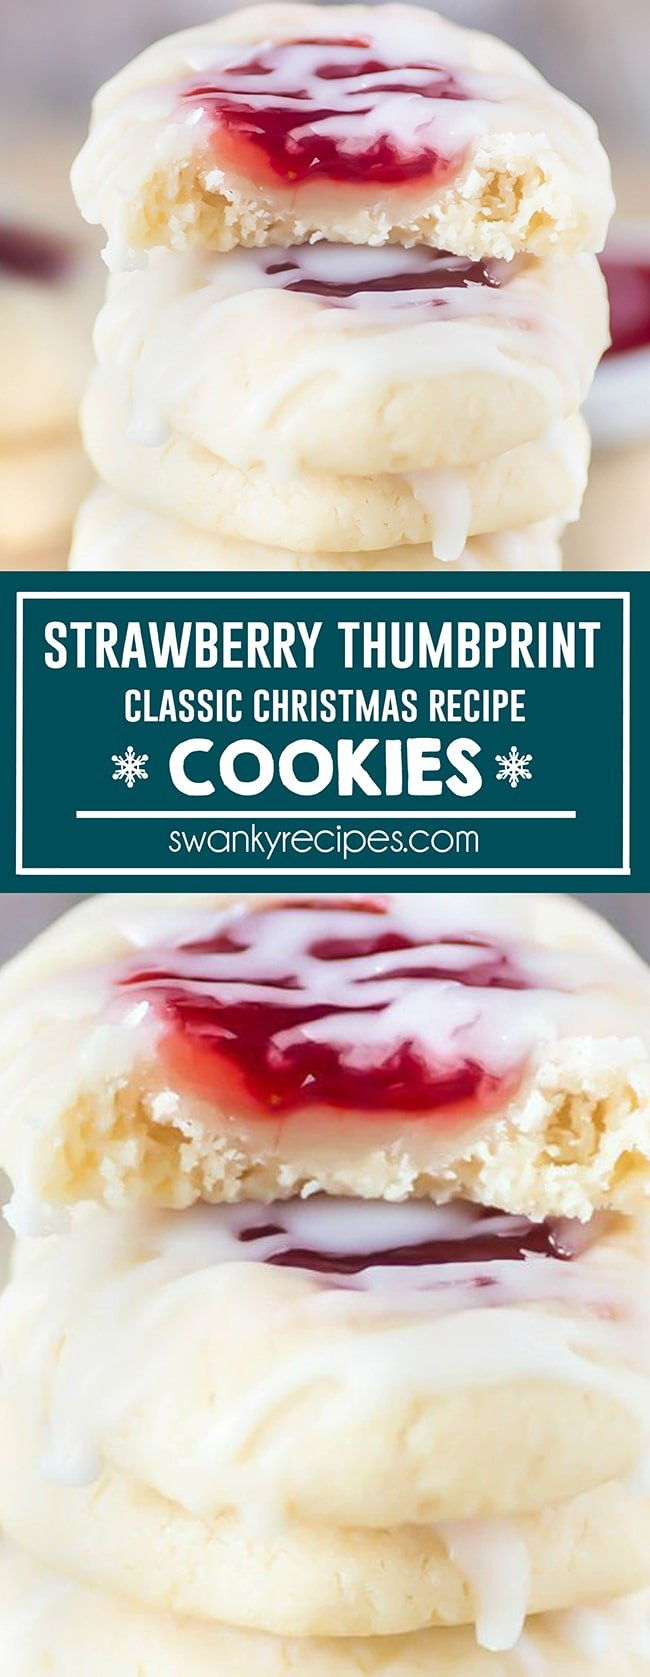 Classic Strawberry Thumbprint Cookies - Buttery thumbprint cookies stacked and filled with strawberry jam and glazed. text in center reads strawberry thumbprint classic christmas recipe cookies in blue boarder. Second image is a closer up photo of first.